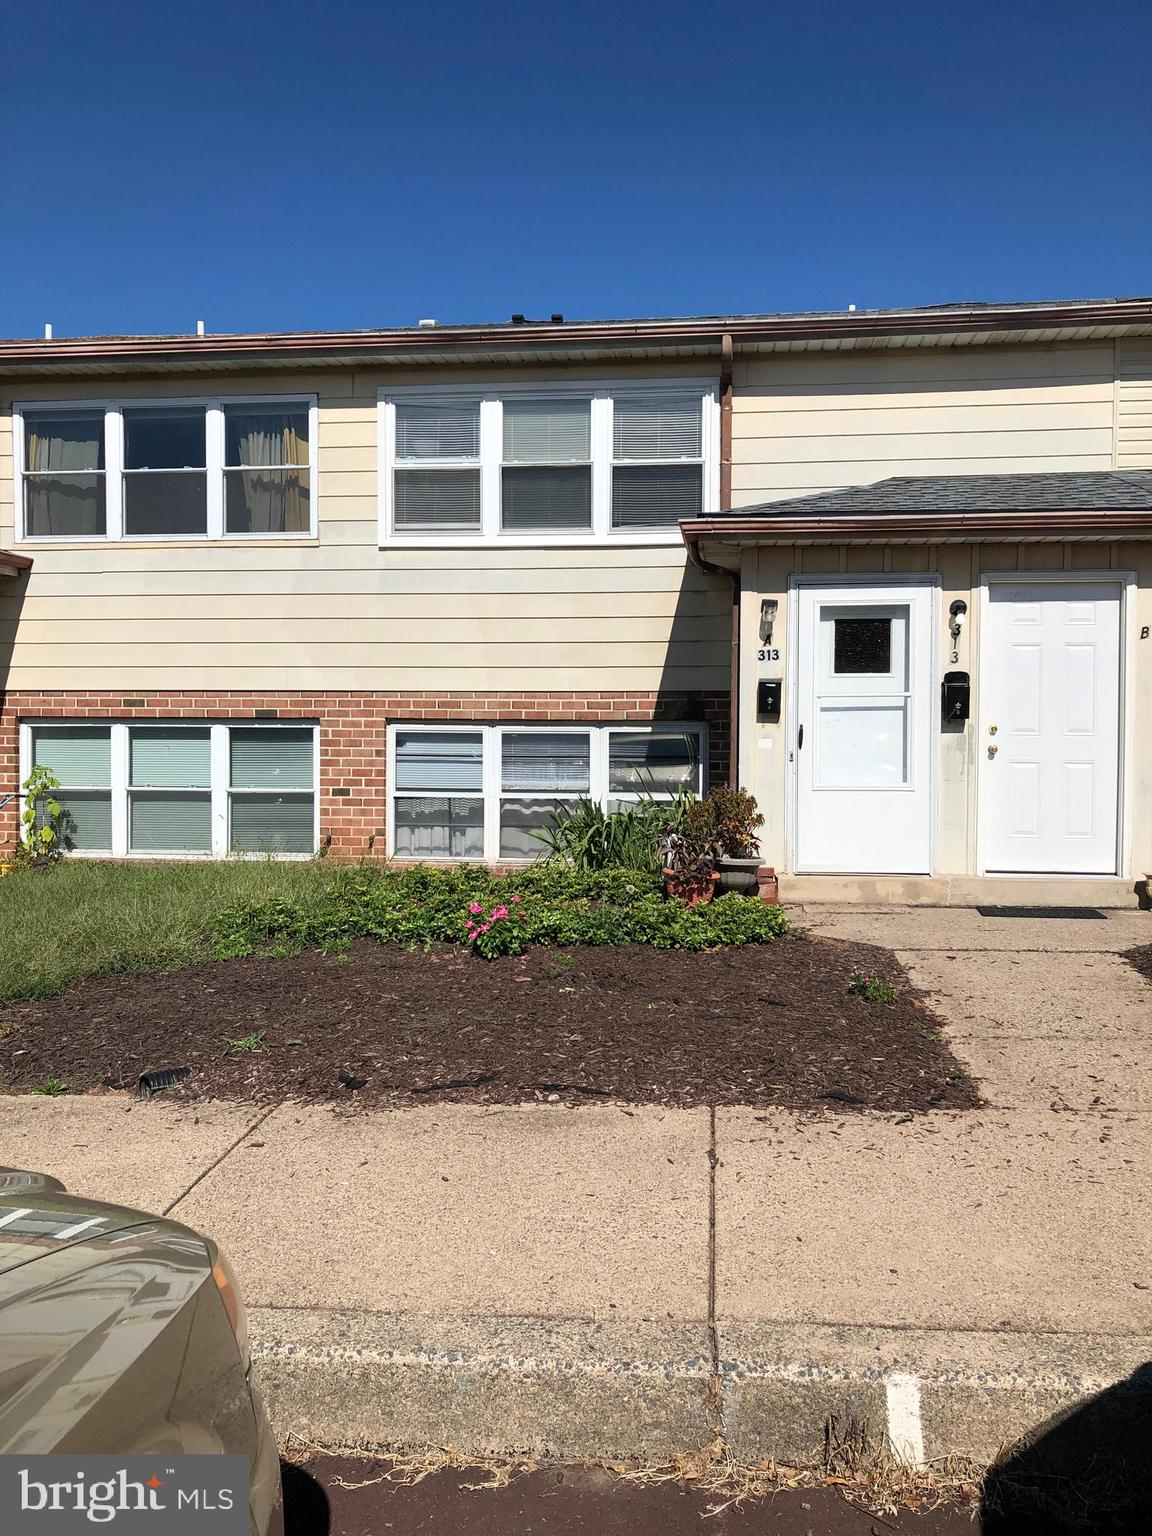 313 FORGE ROAD, EAST GREENVILLE, PA 18041